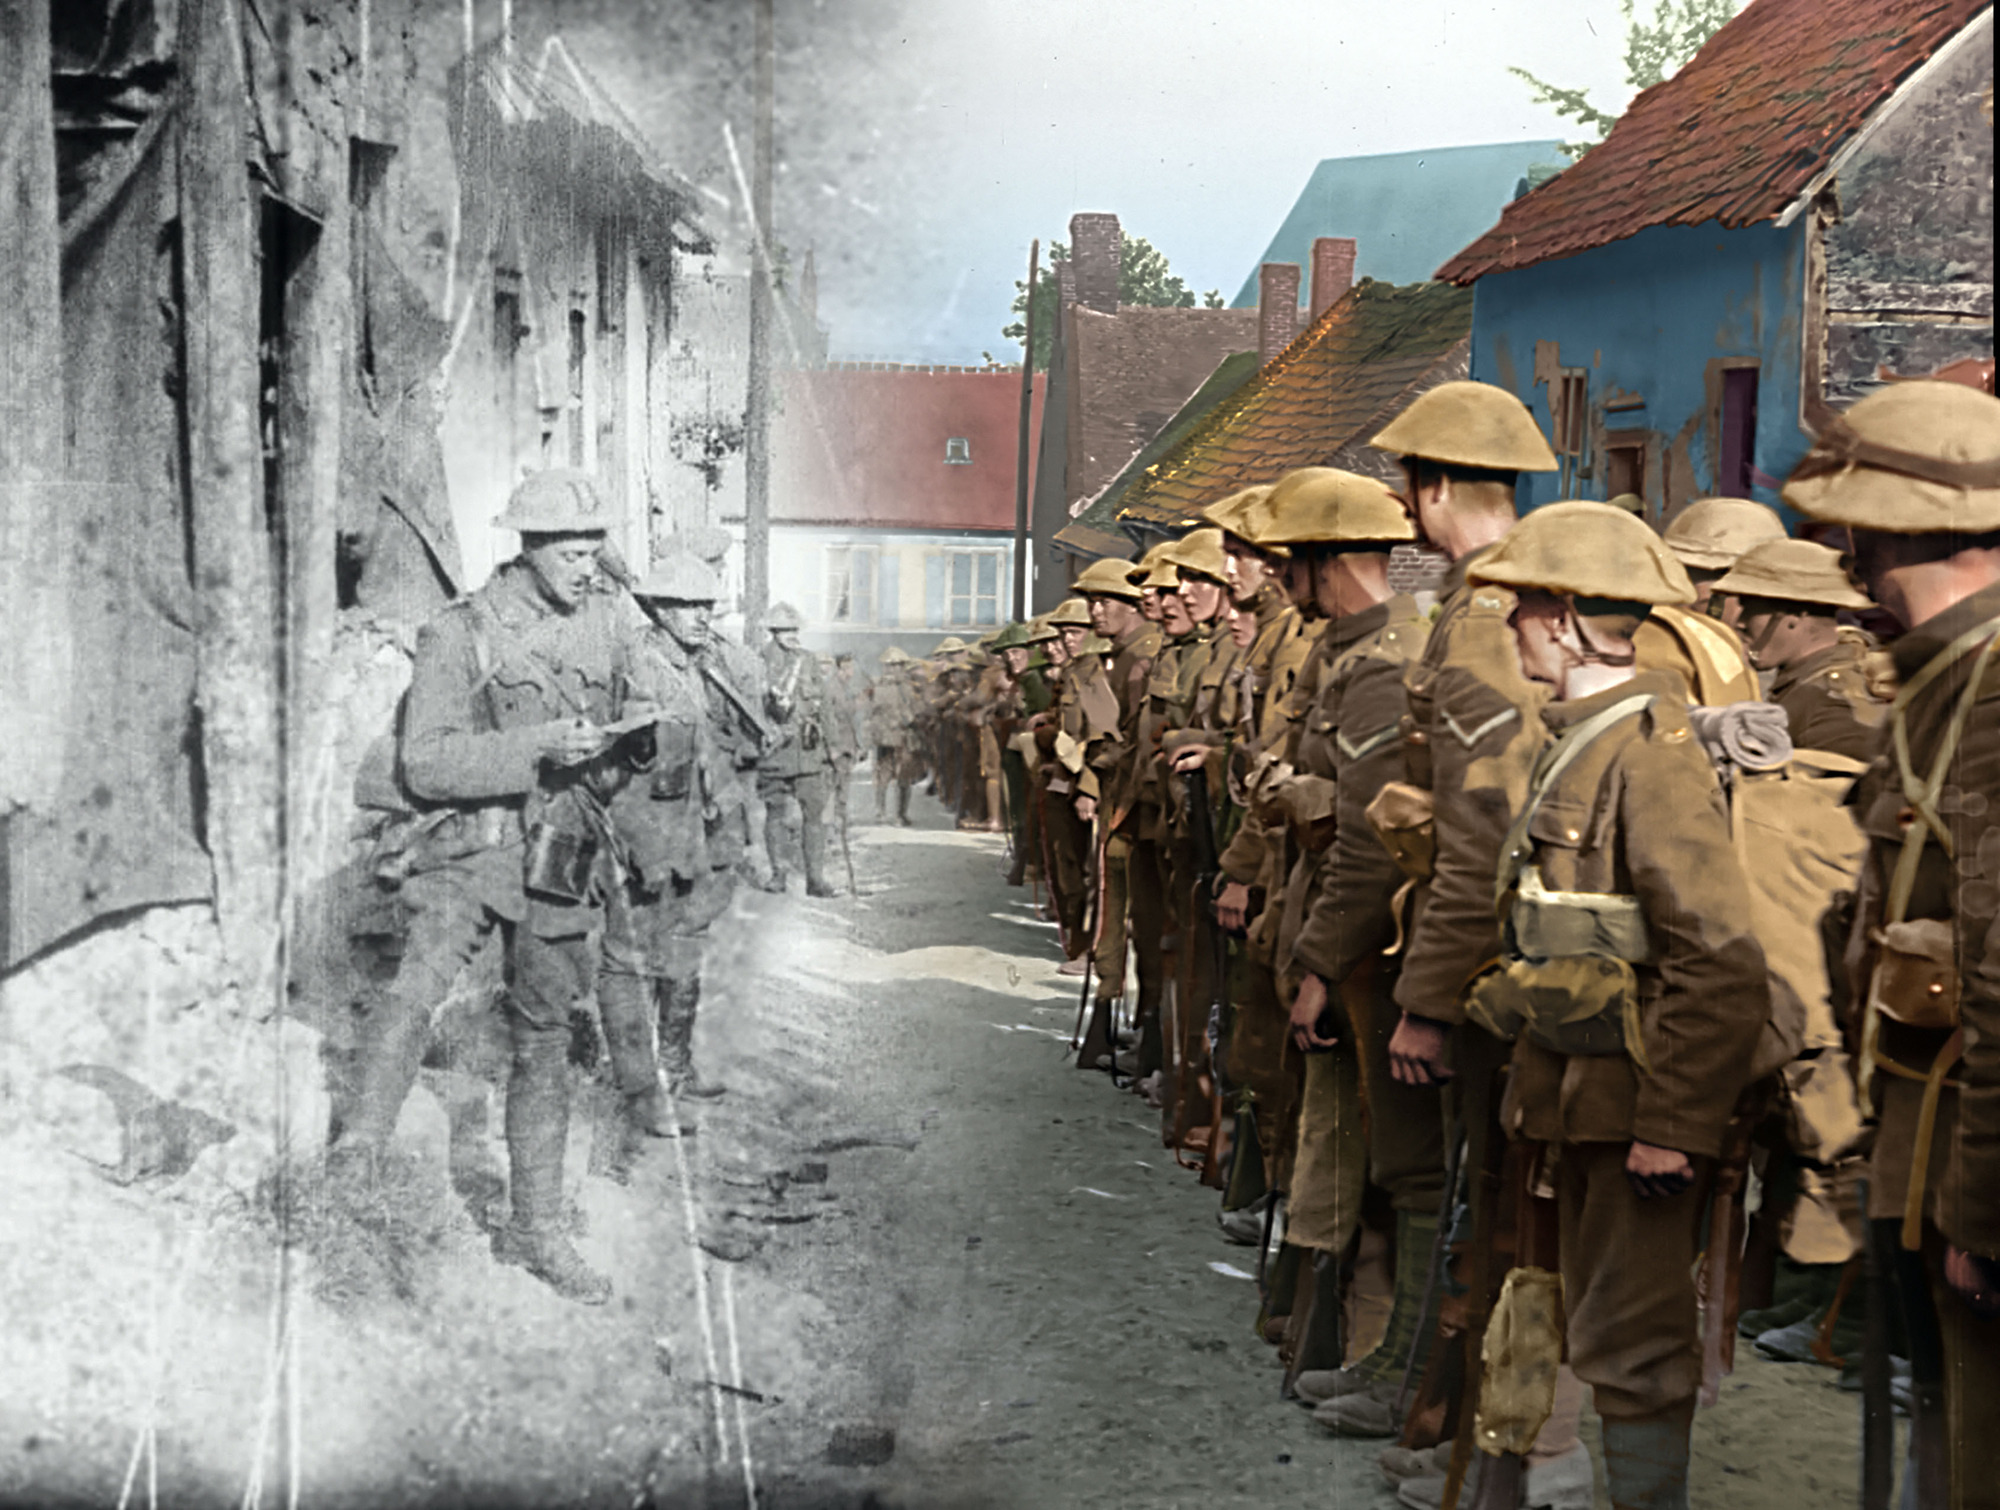 Peter Jackson Making Documentary on World War I